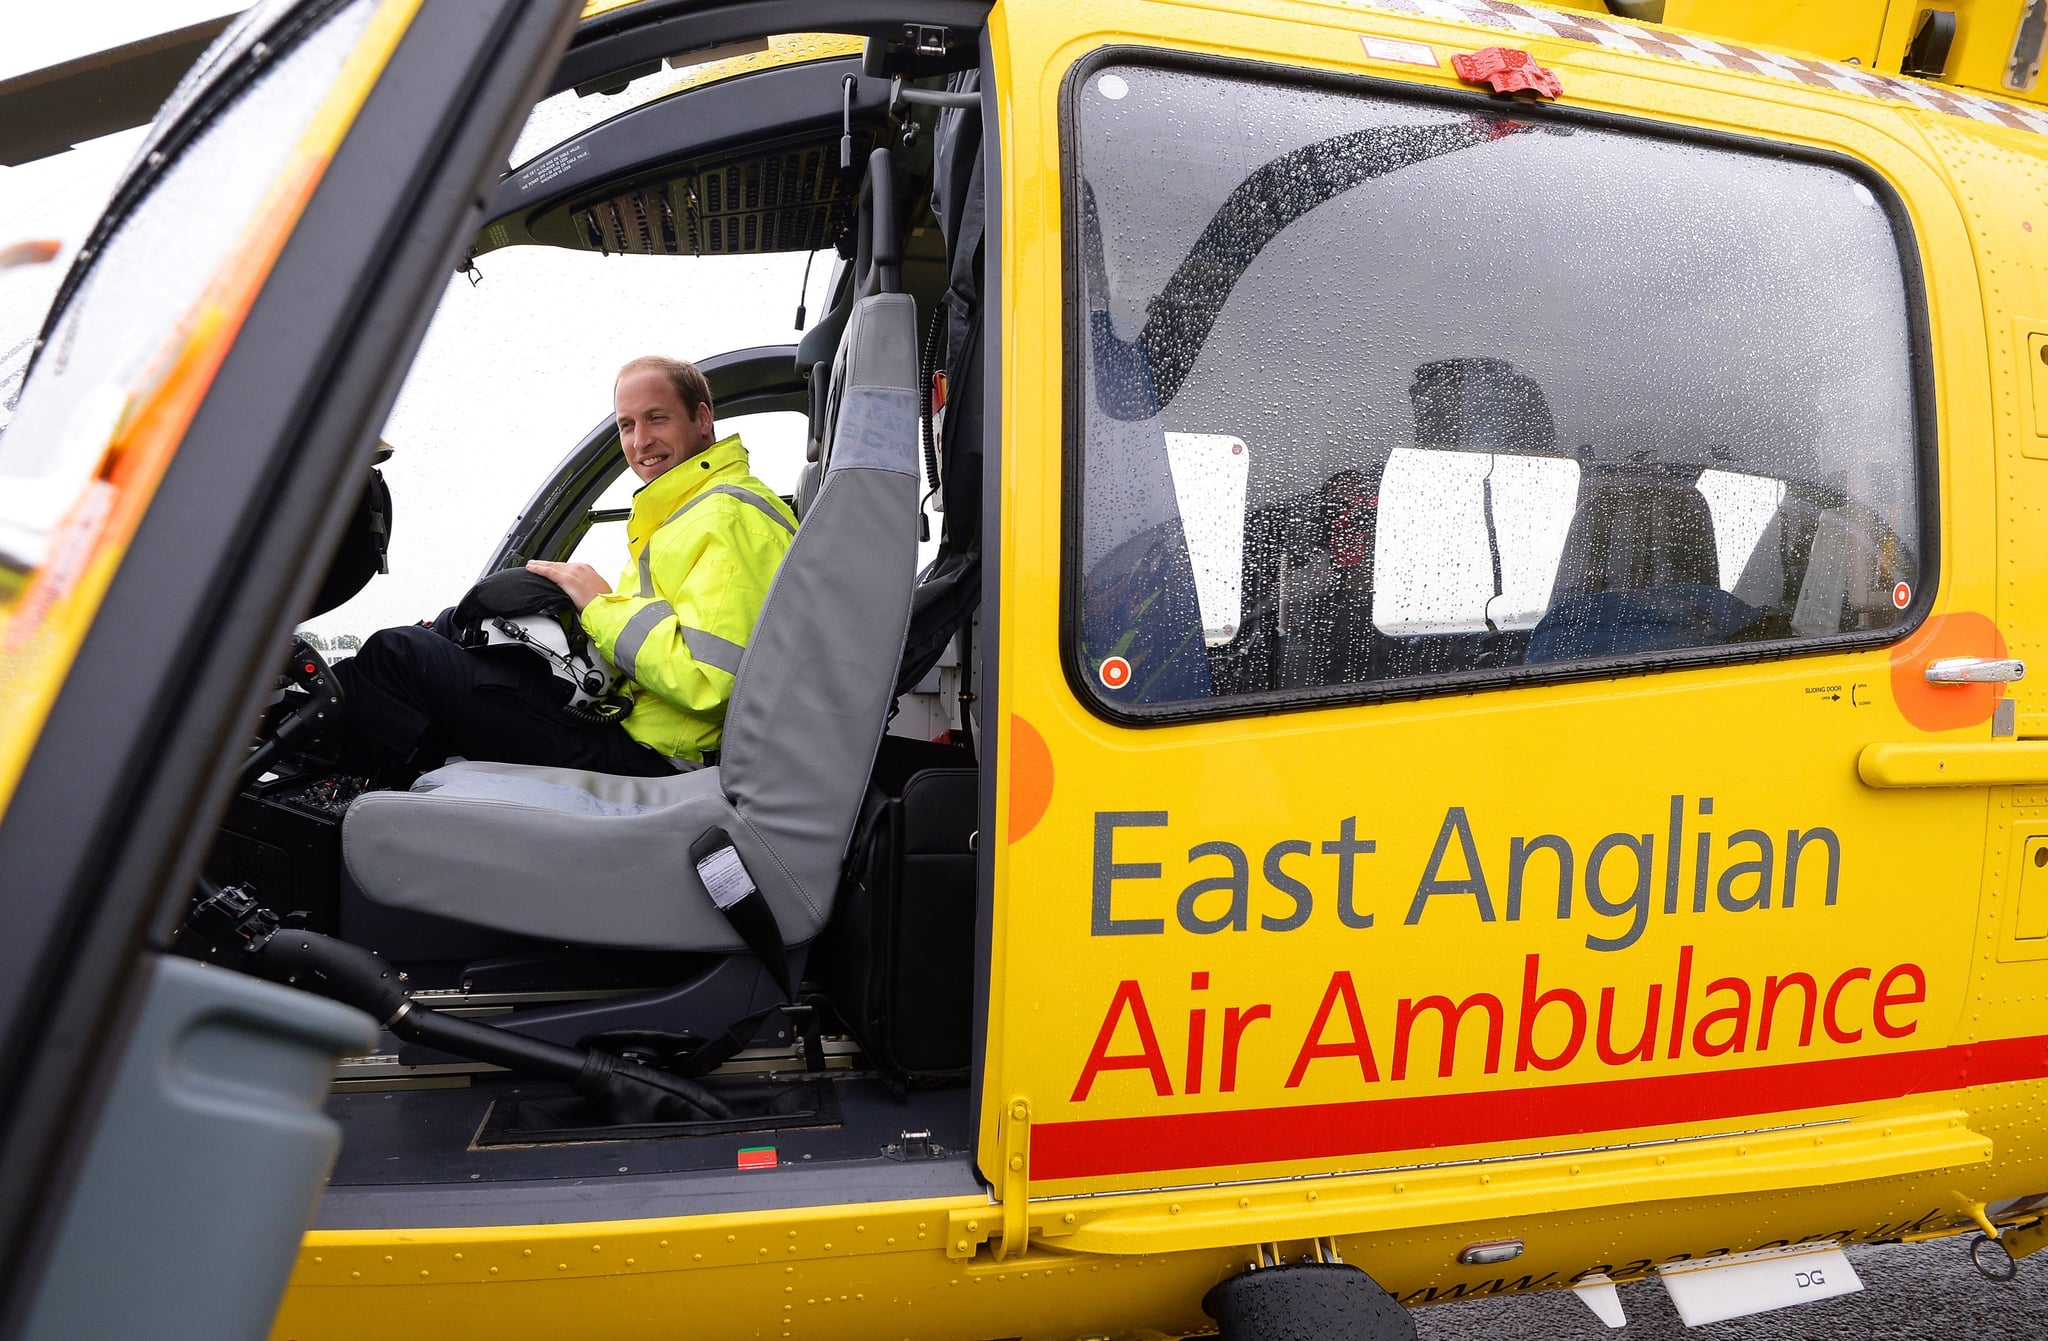 prince william s essay about east anglian air ambulance popsugar